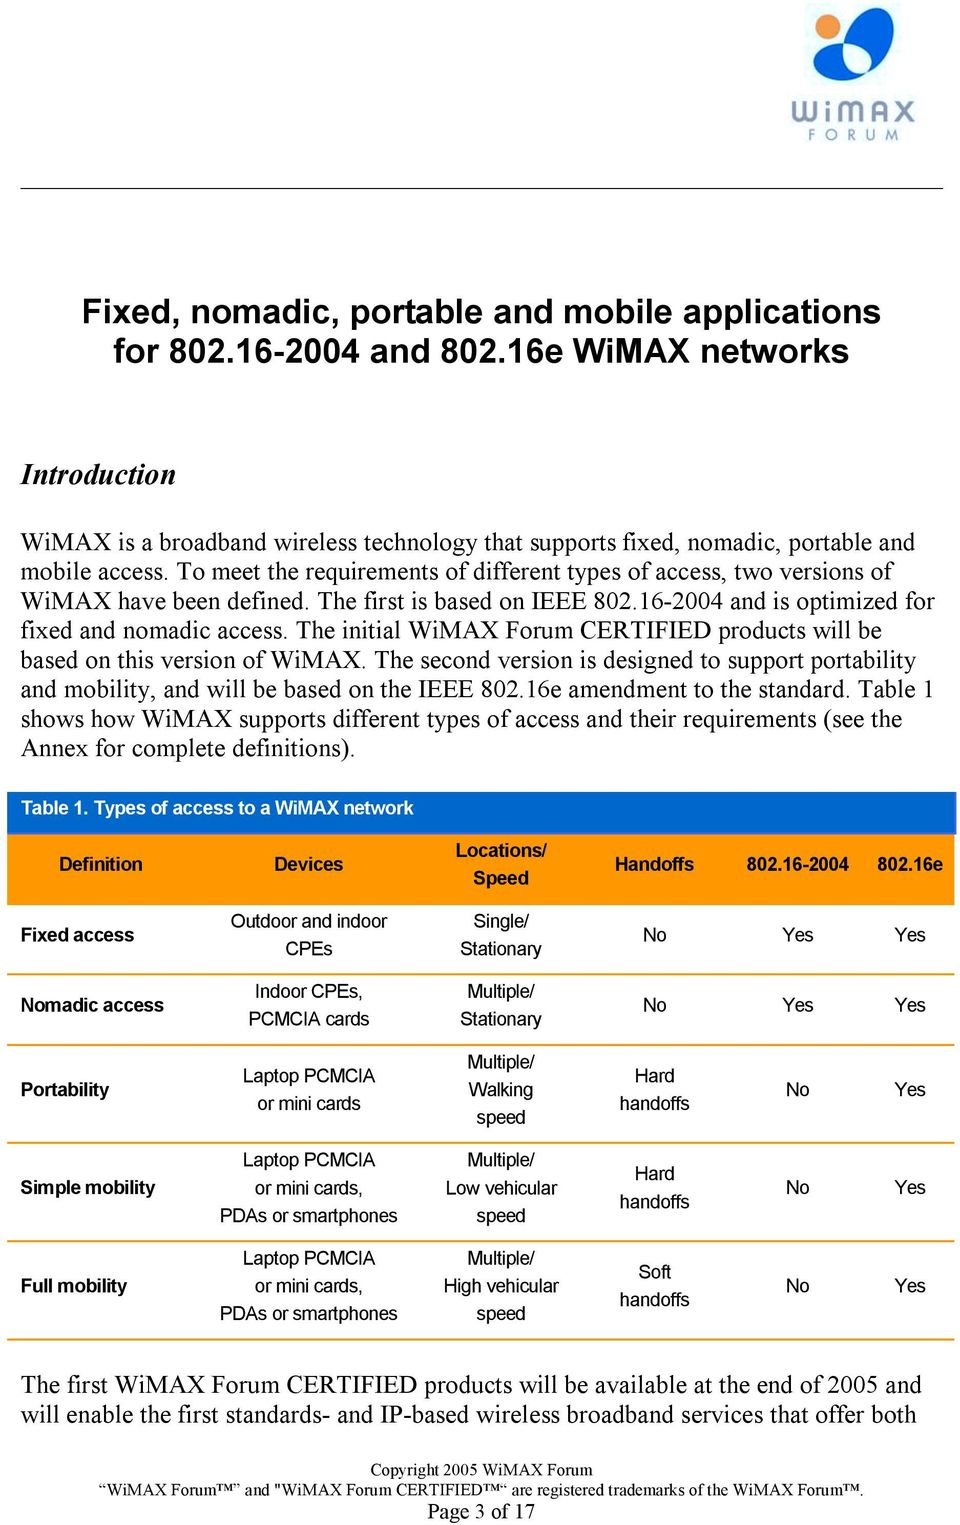 To meet the requirements of different types of access, two versions of WiMAX have been defined. The first is based on IEEE 802.16-2004 and is optimized for fixed and nomadic access.